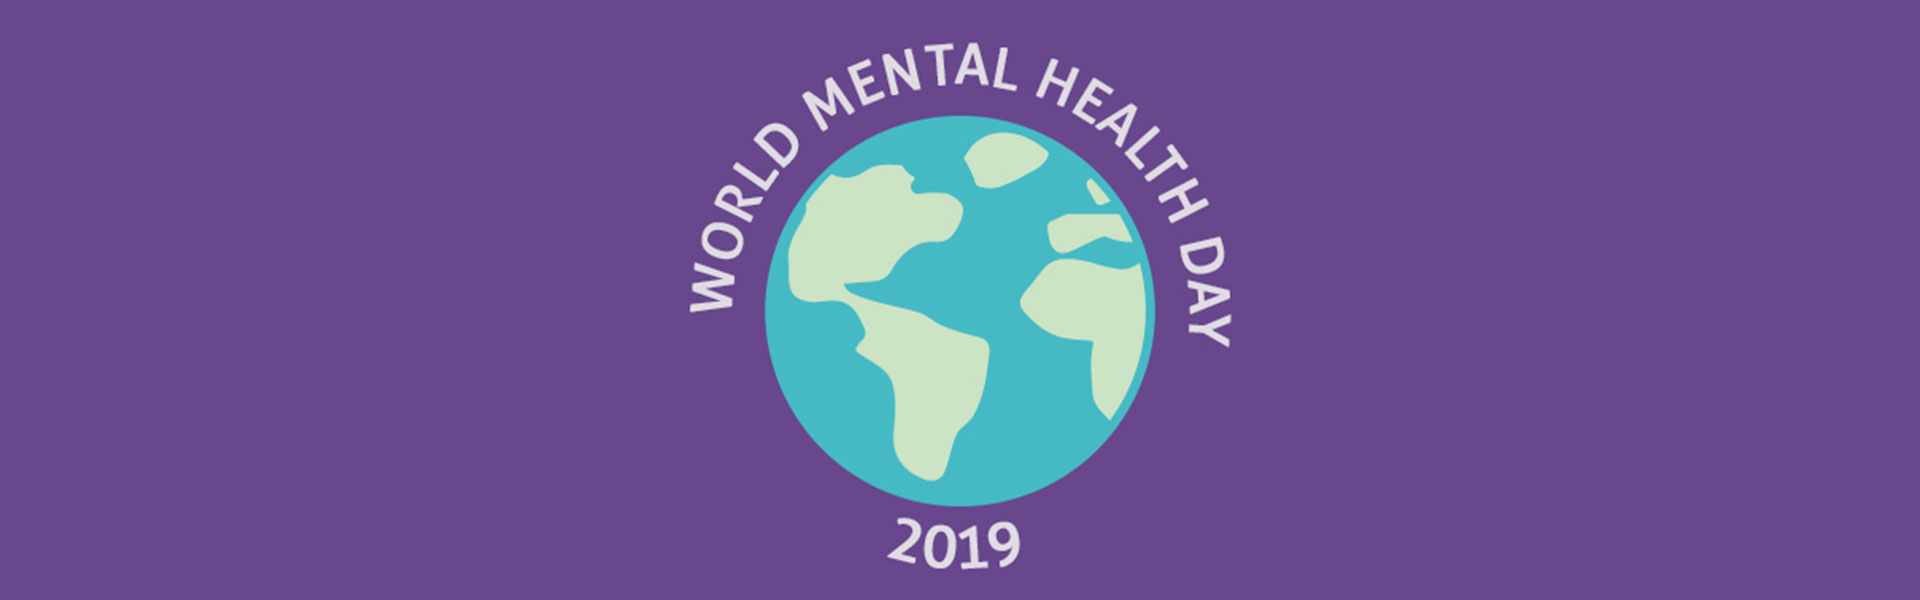 World Mental Health Day 2019 (image)